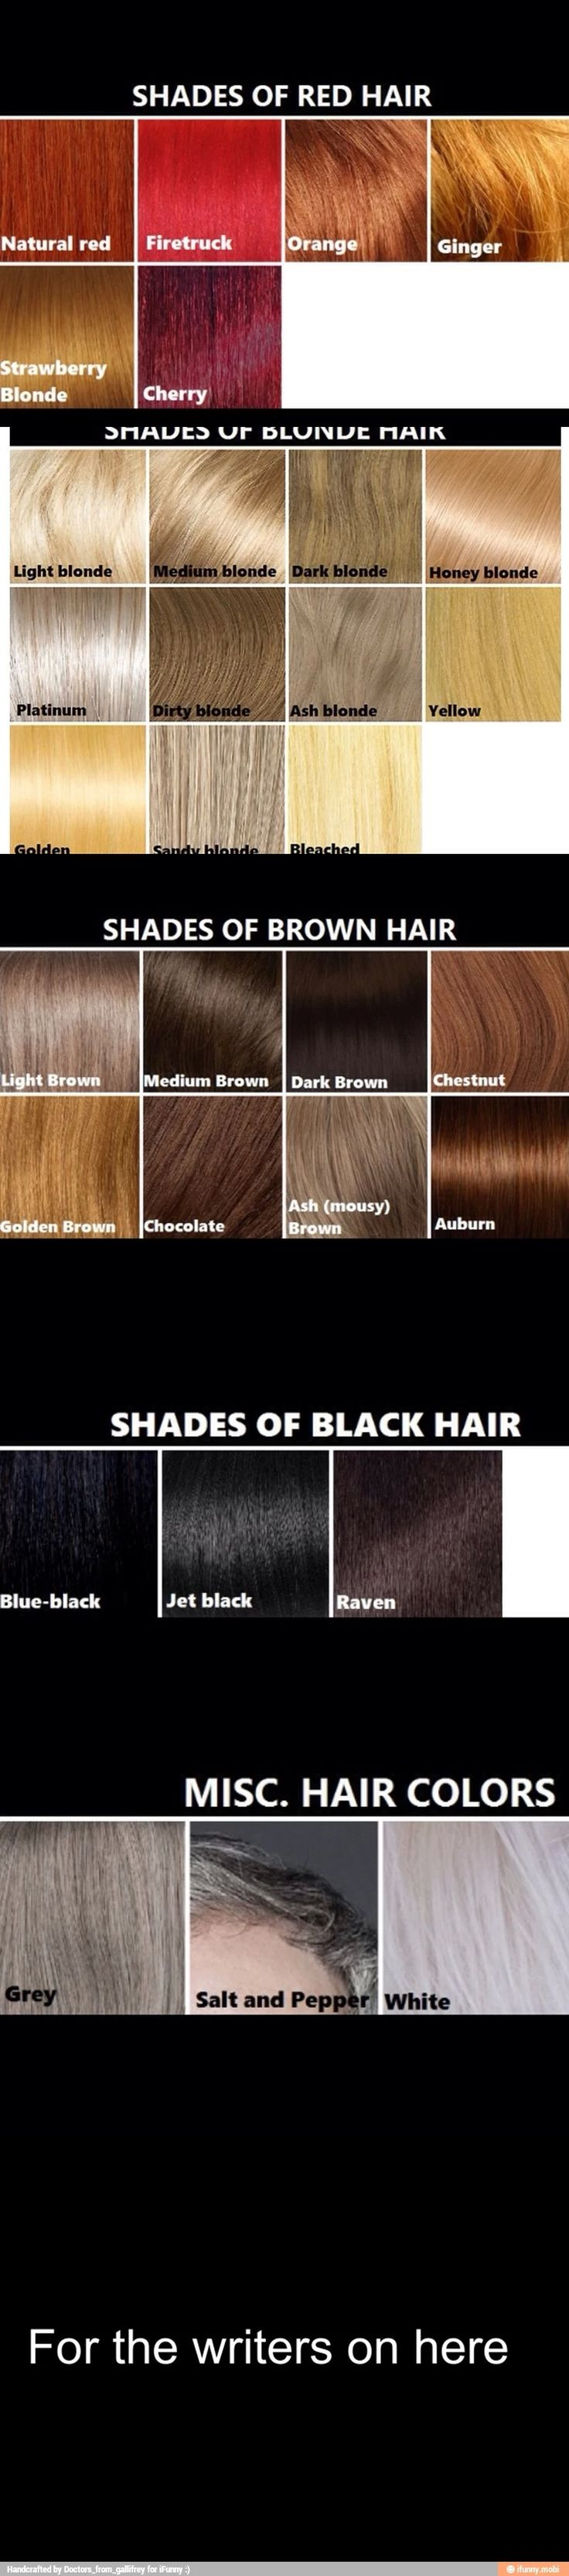 Words For Describing Hair Color.